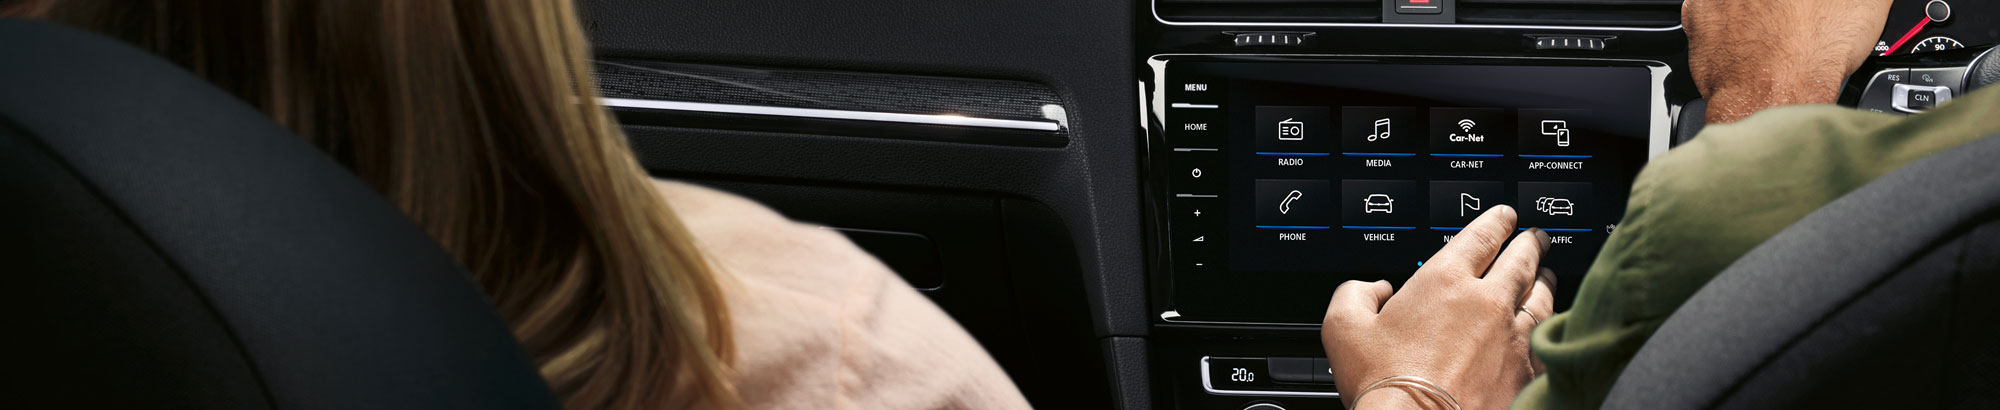 In Car Entertainment & Navigation Systems | Volkswagen UK